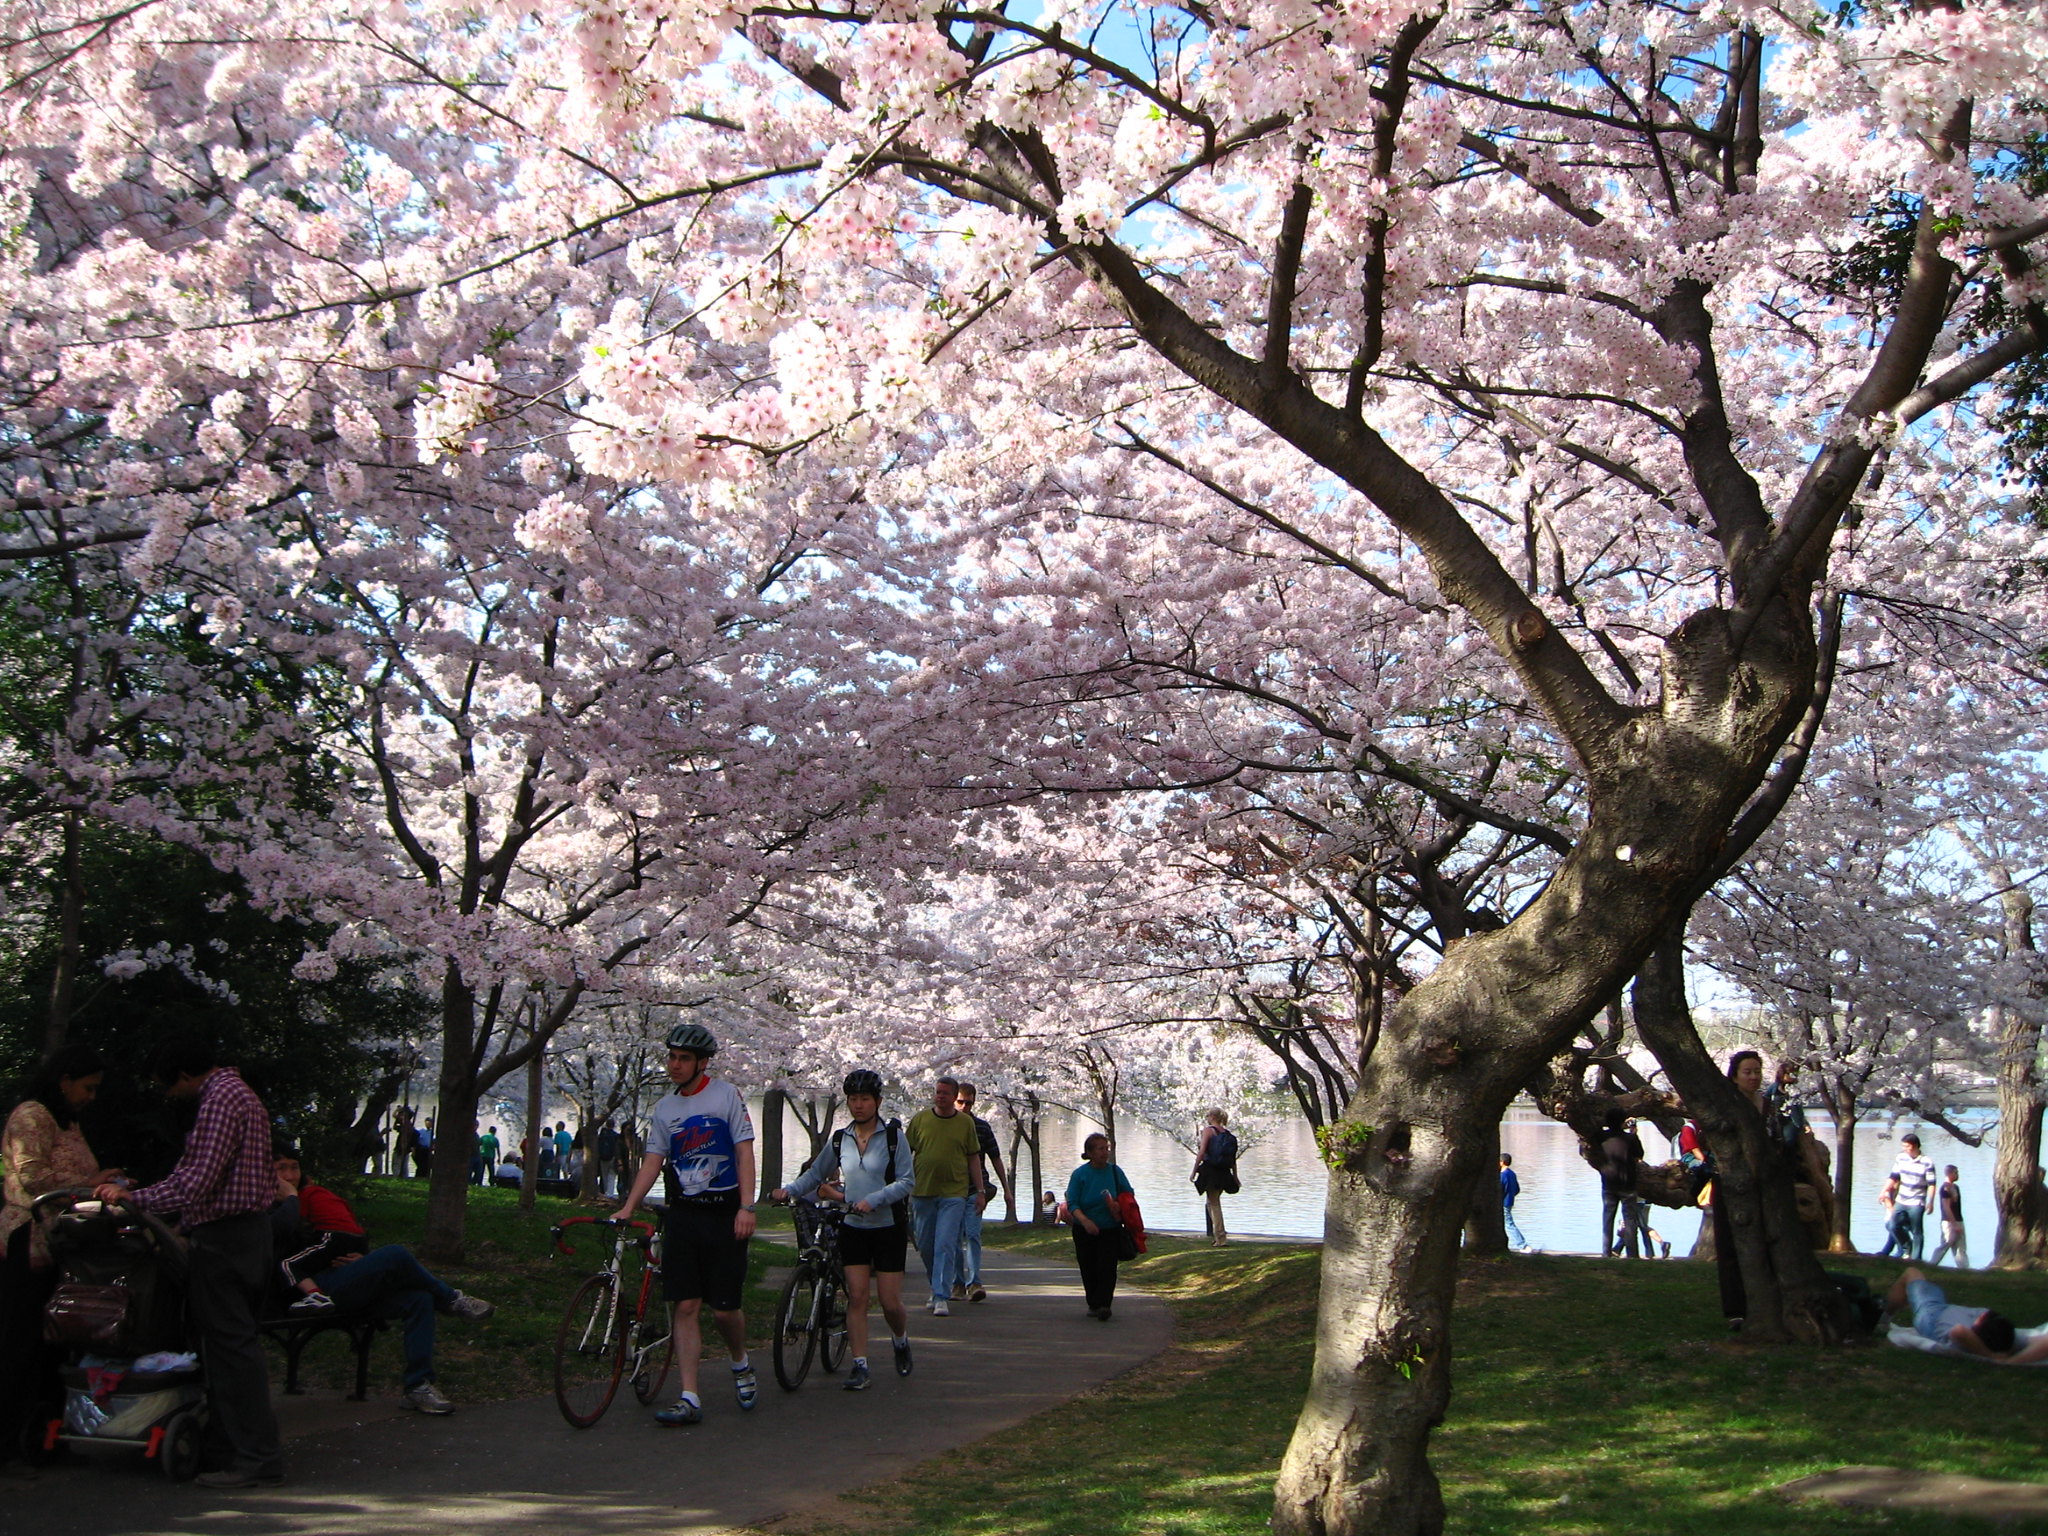 The Georgia Cherry Blossom Festival Will Have Over 300,000 Trees In Bloom This Spring